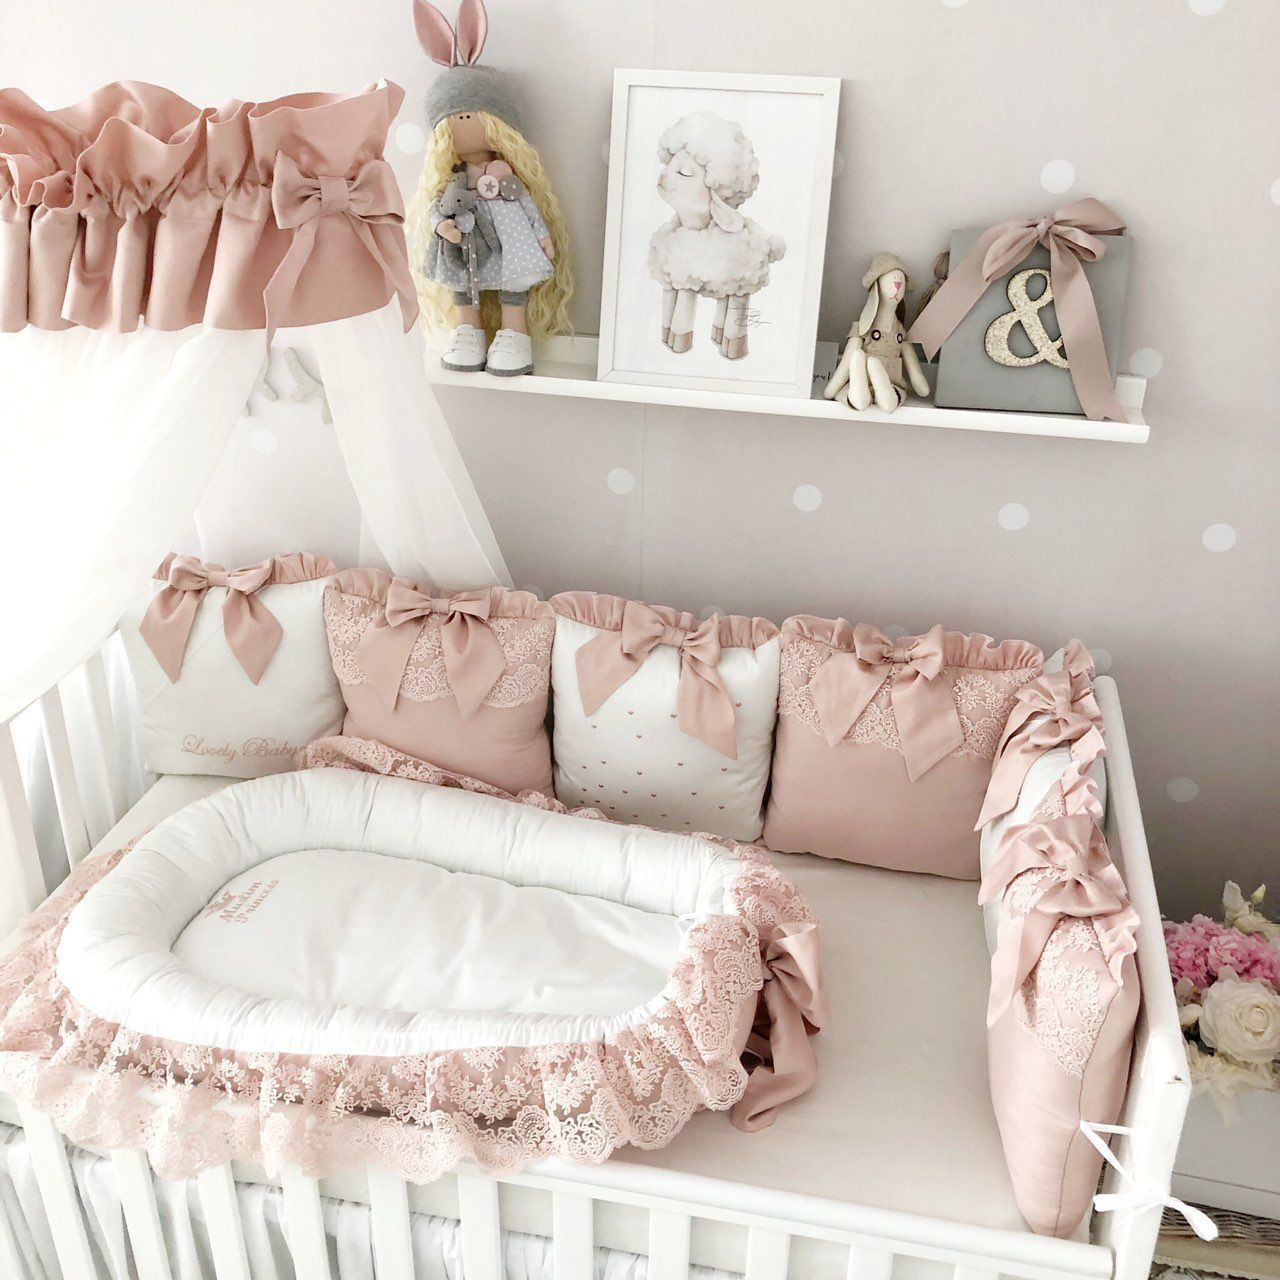 Baby Girl Bedding Crib Set Cot Bedding Set For Girl Personalized Baby Bedding Deluxe Baby Nest Baby Sleeper Bumper Pads Receiving Blanket Crib Bedding Girl Luxury Crib Bedding Cot Bedding Sets